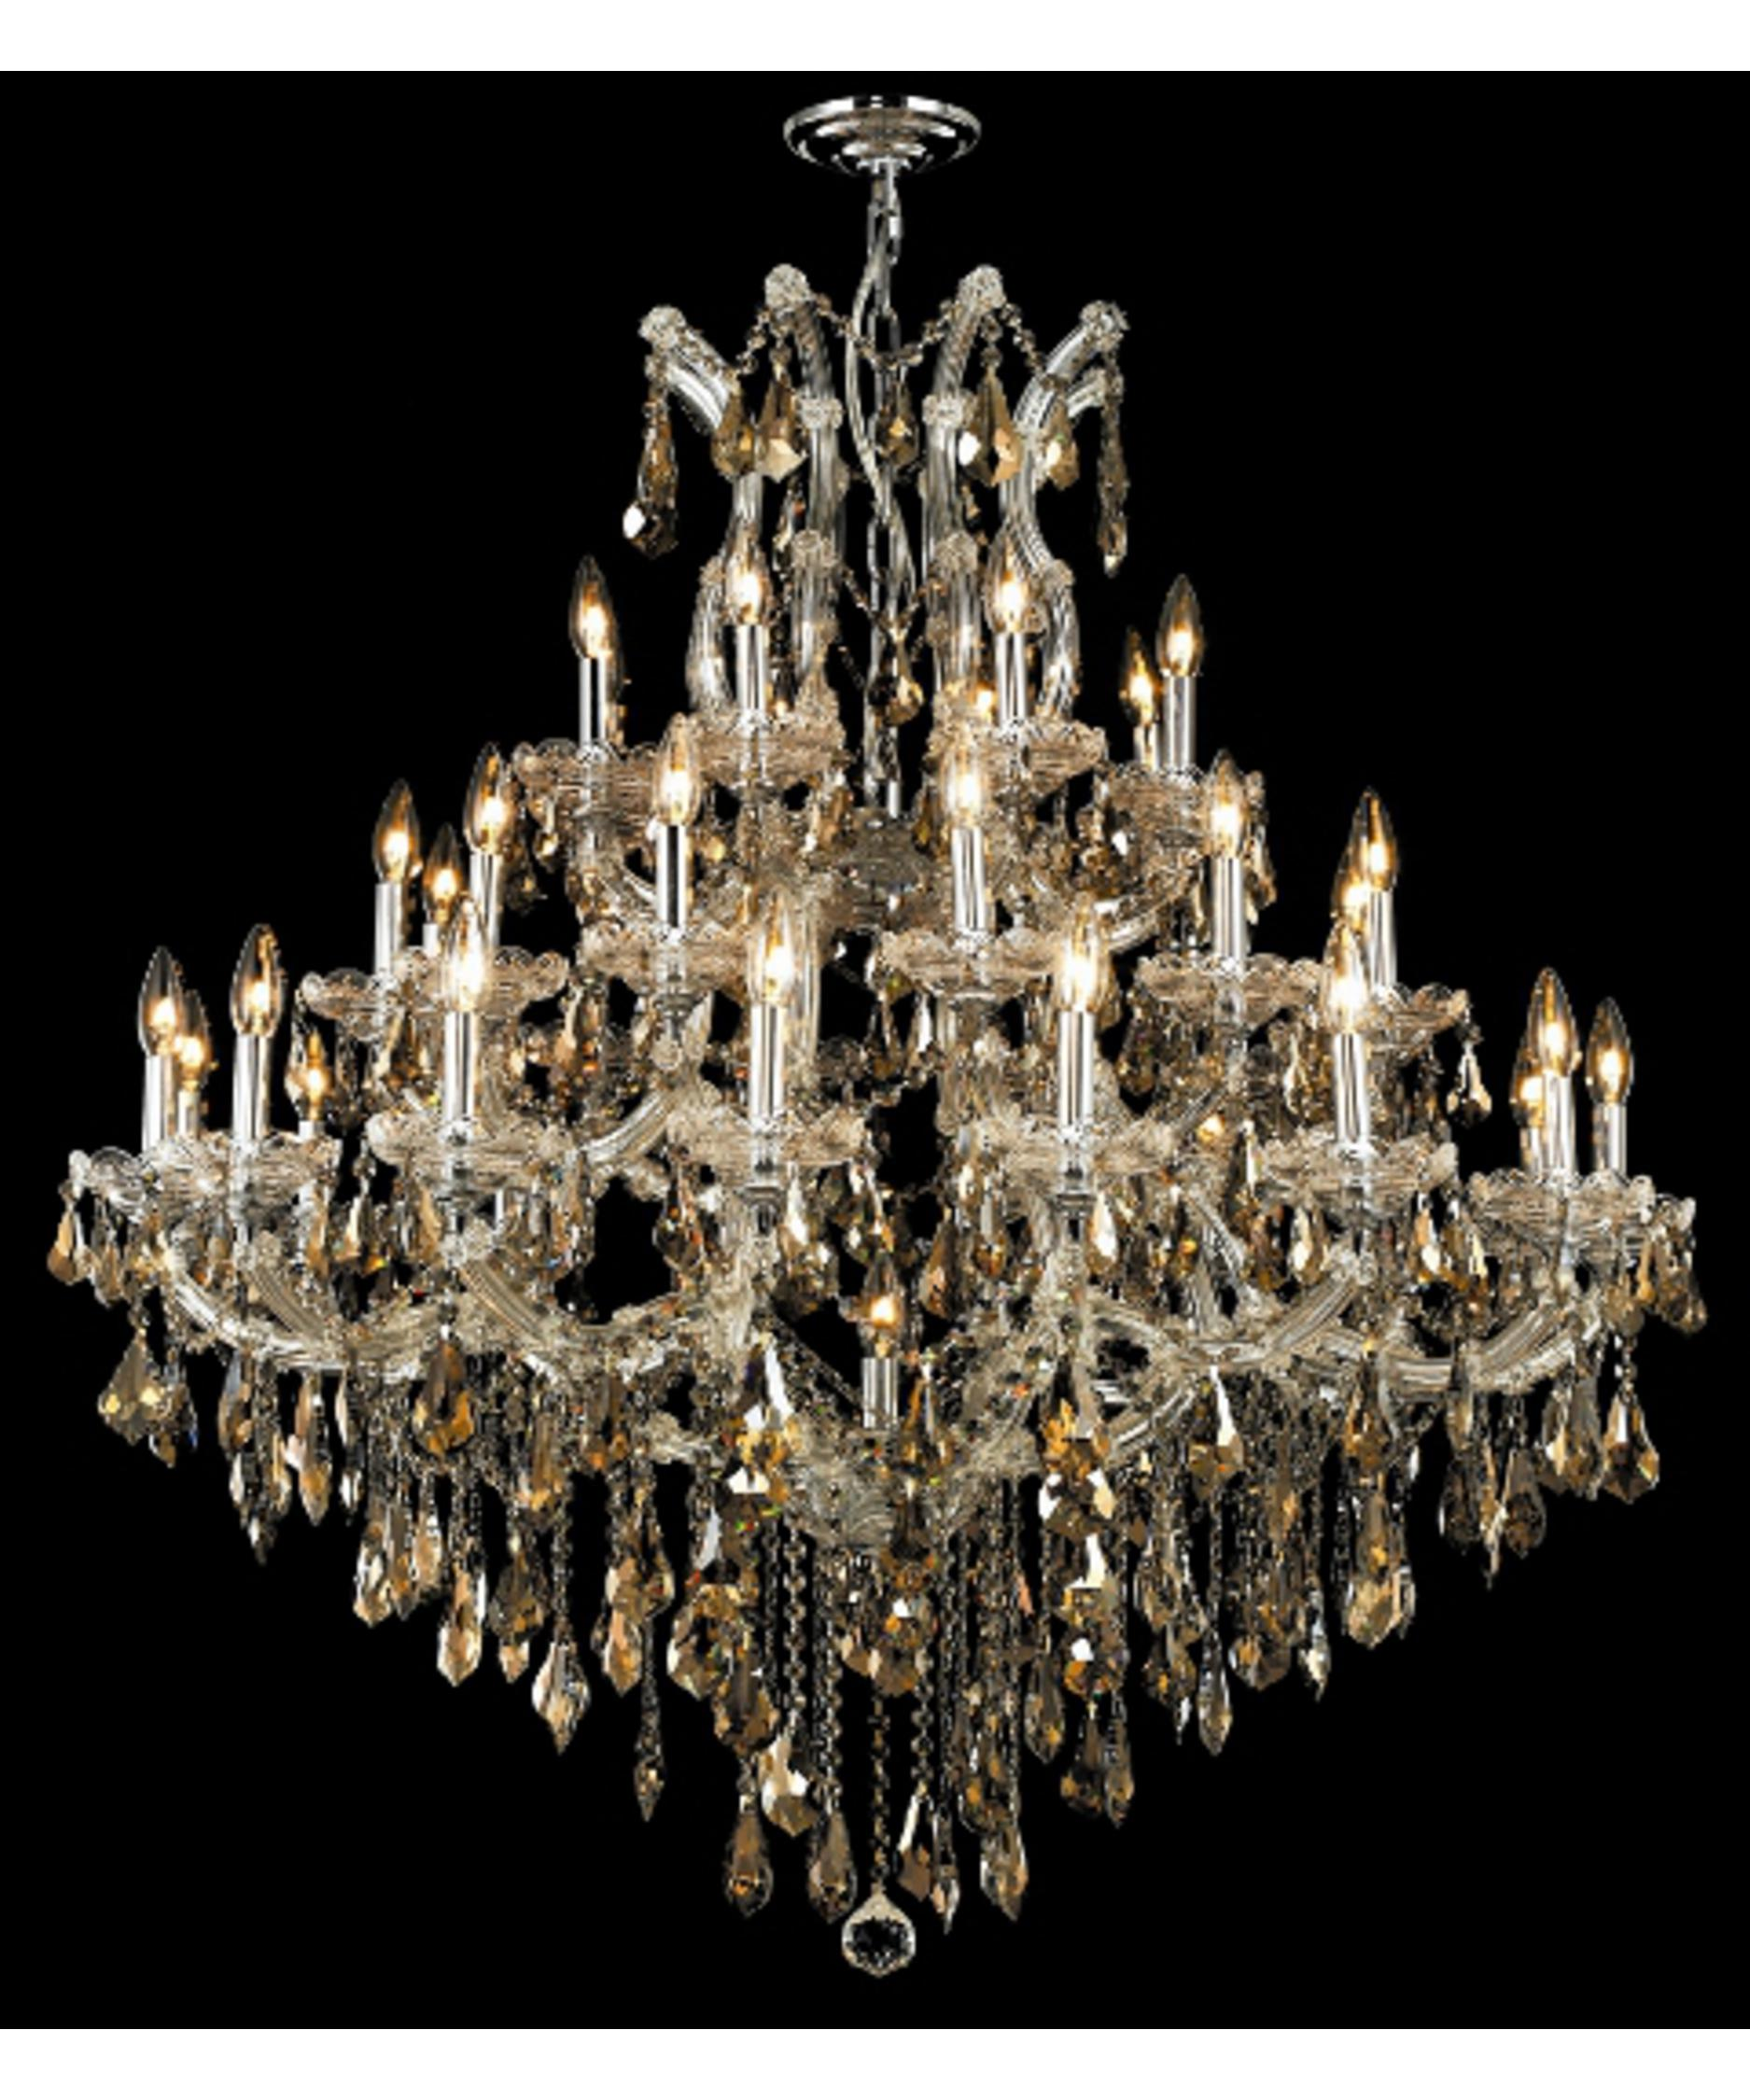 Maria Theresa Chandeliers: Image does not reflect options selected.,Lighting